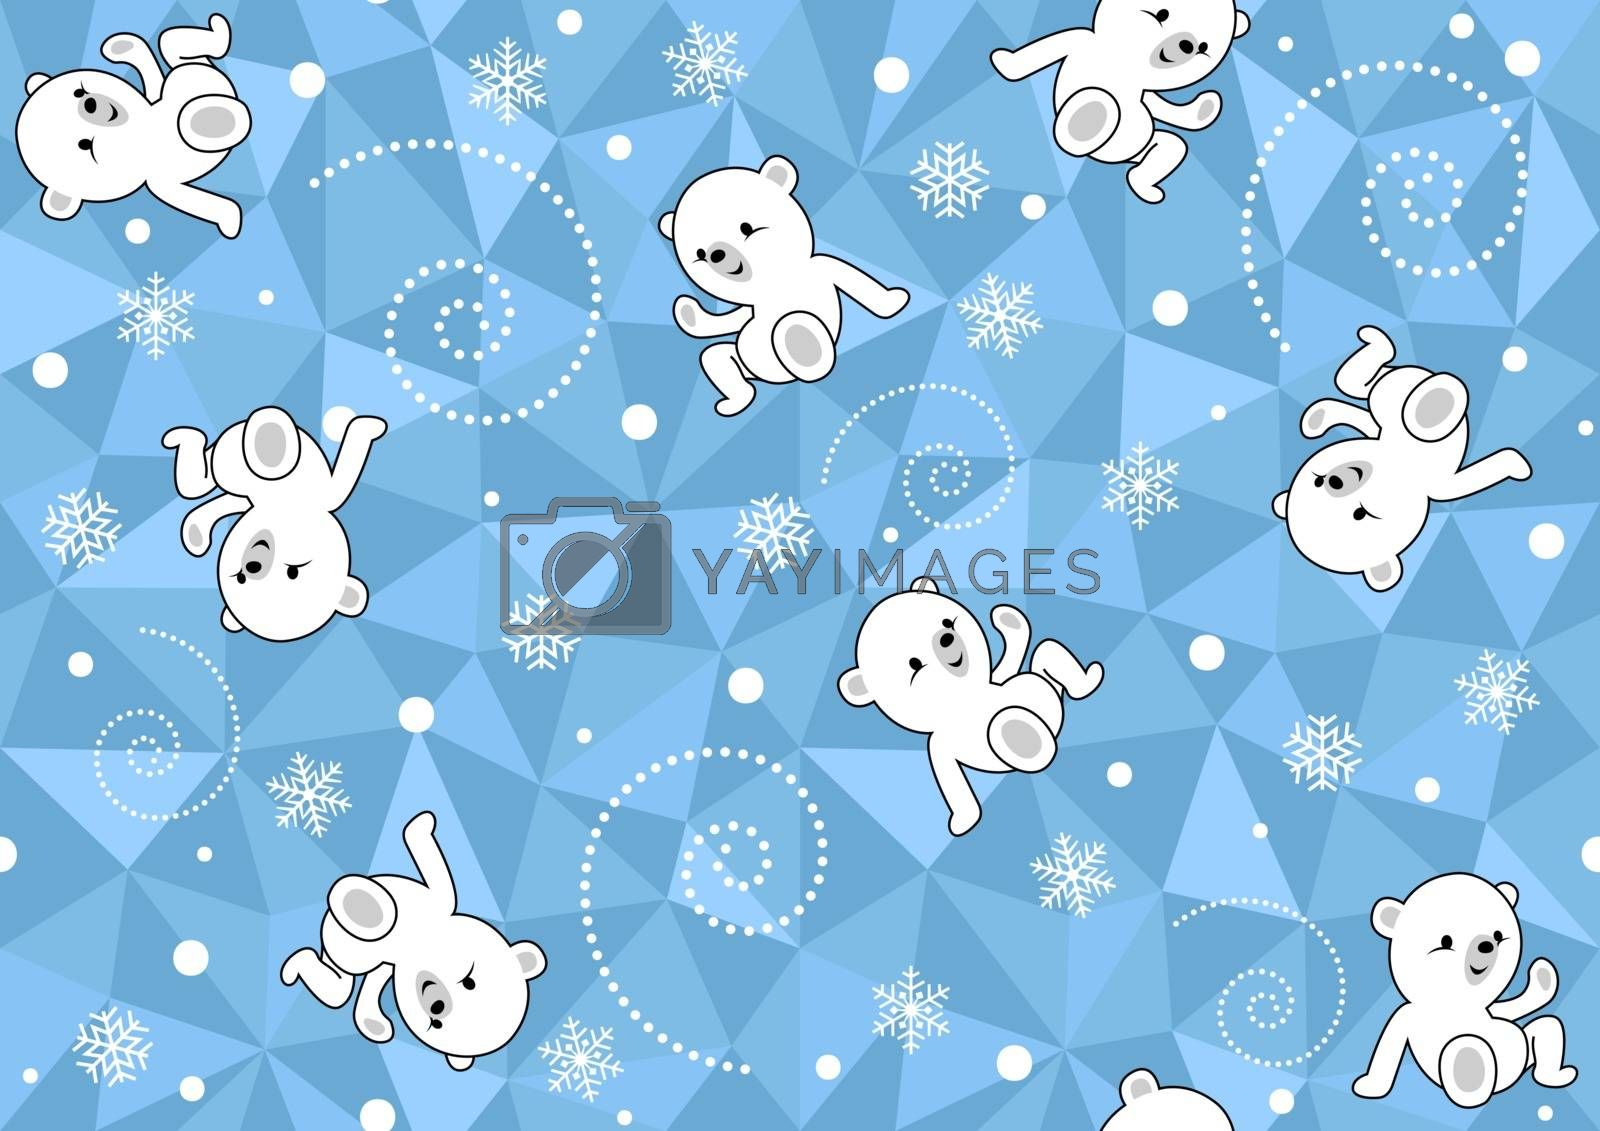 Seamless Baby Pattern with Polar Bear on Blue Polygonal Background - Wintry Repetitive Print Texture, Vector Illustration